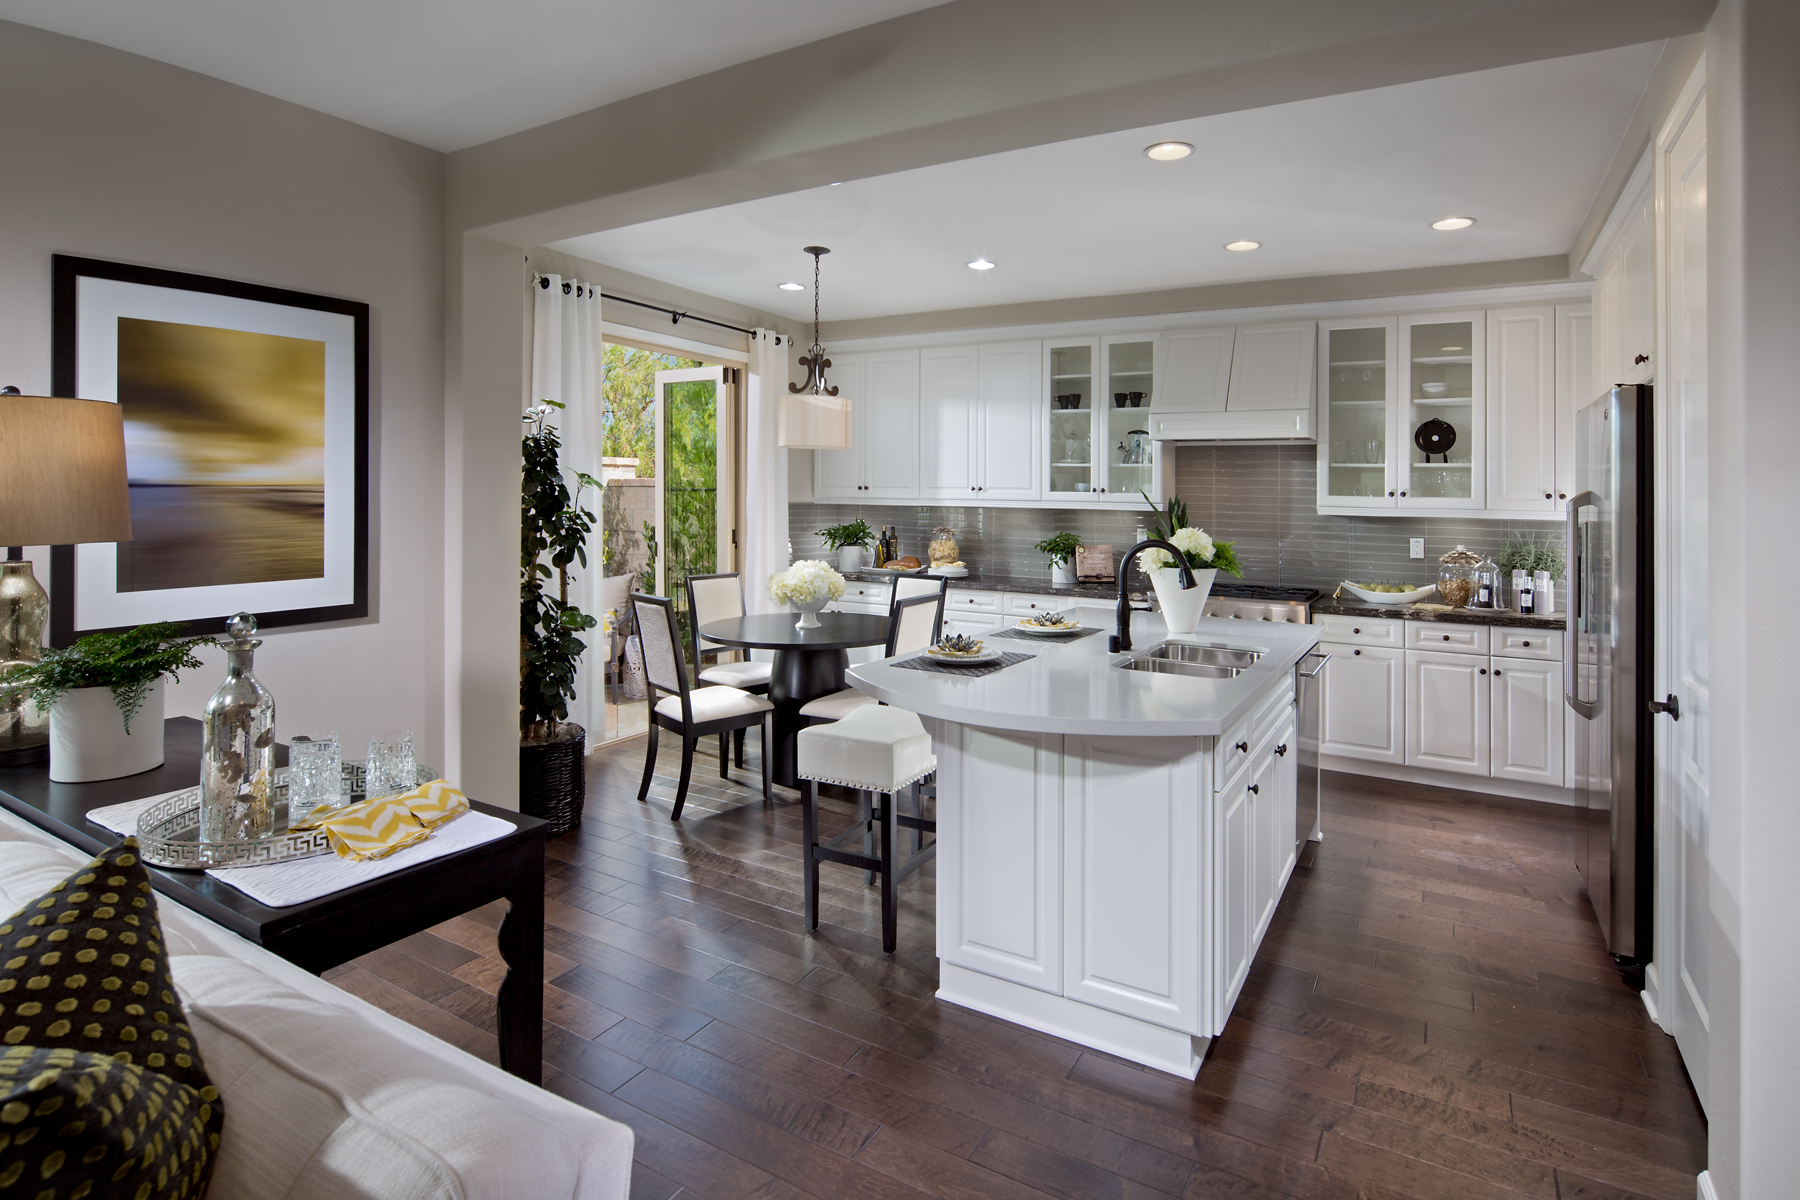 Warmington Residential  Crystal View Chino Hills, CA